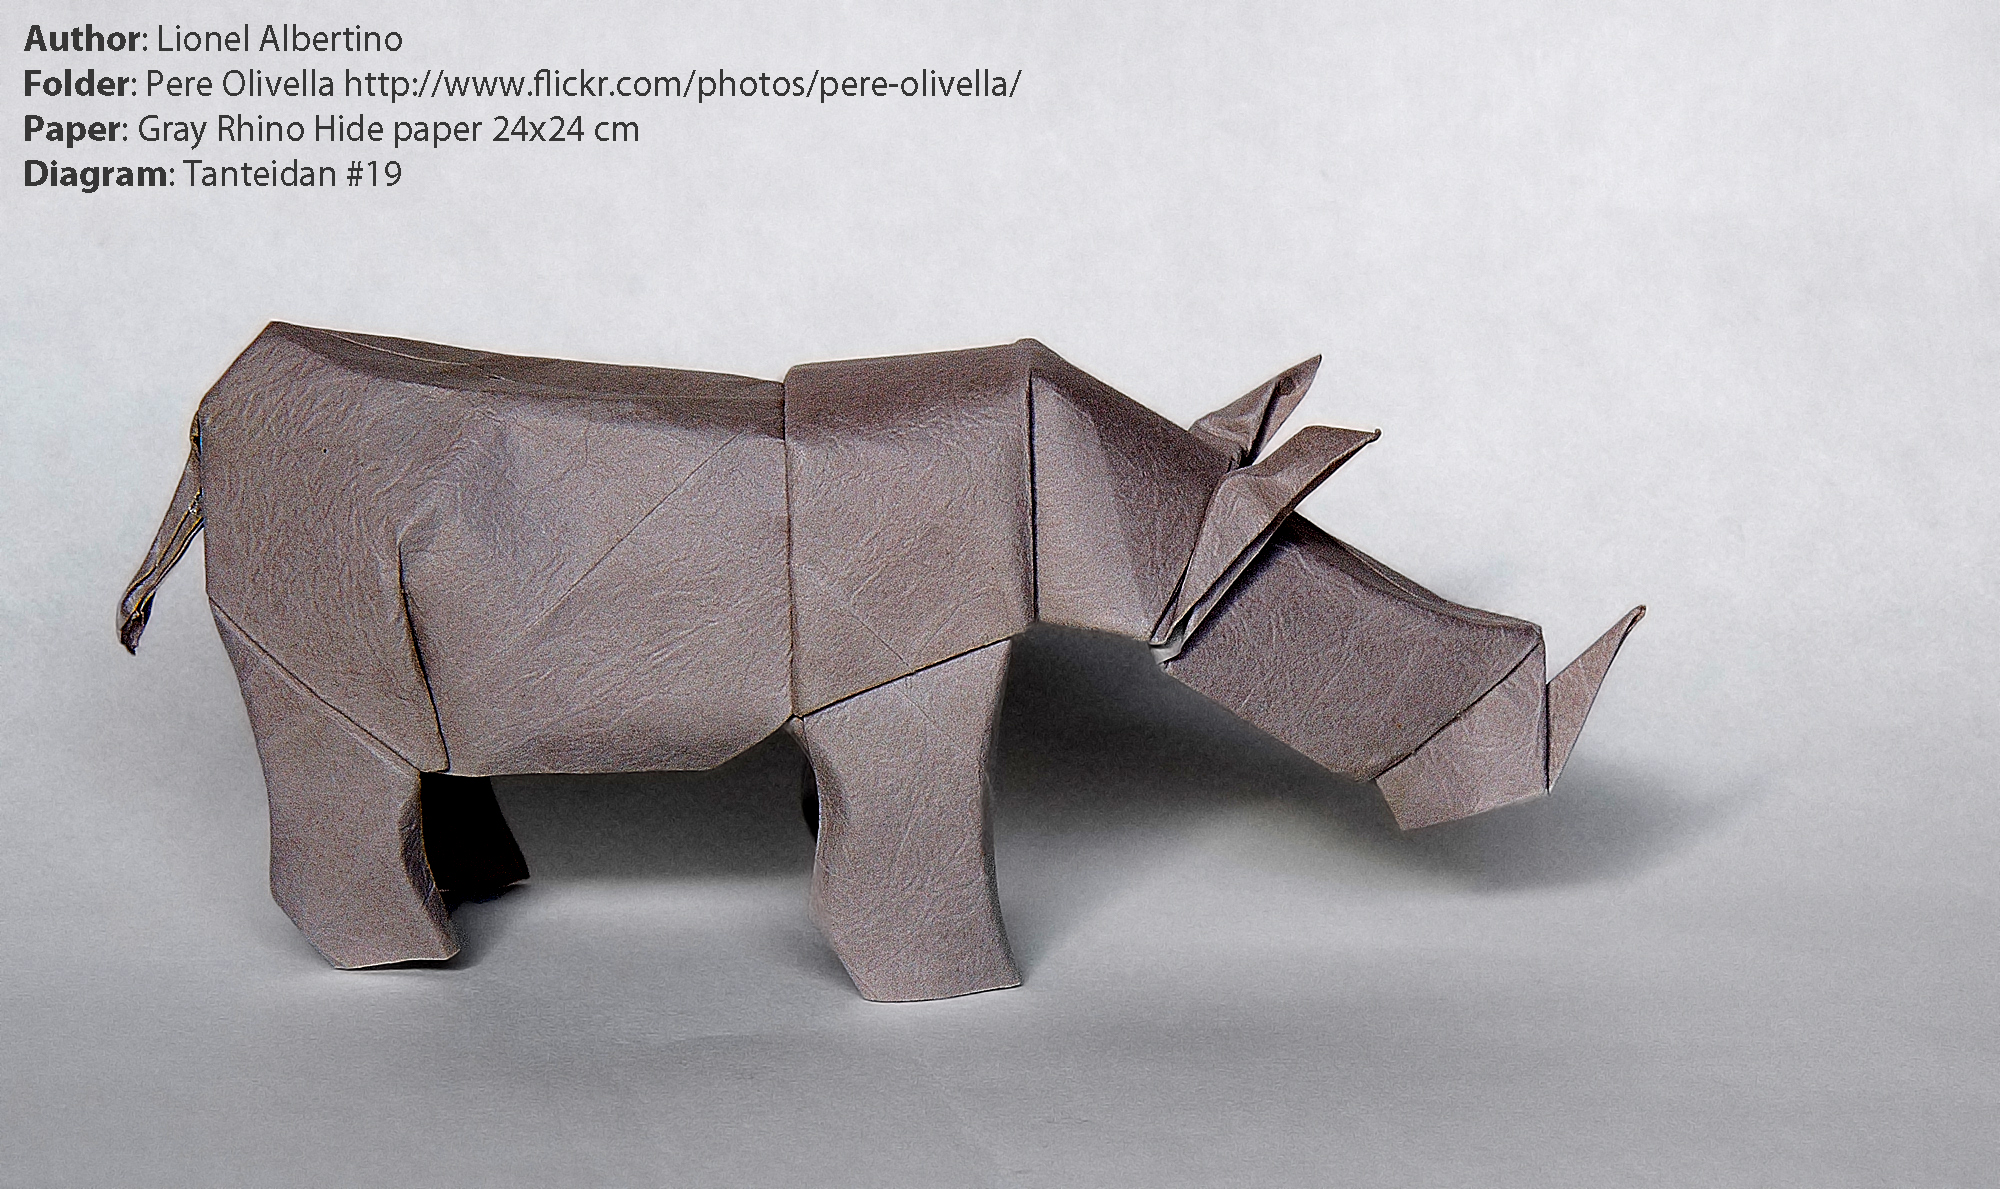 1410777040albertino-rhino-by-pere-olivella-with-rhino-hide-paper